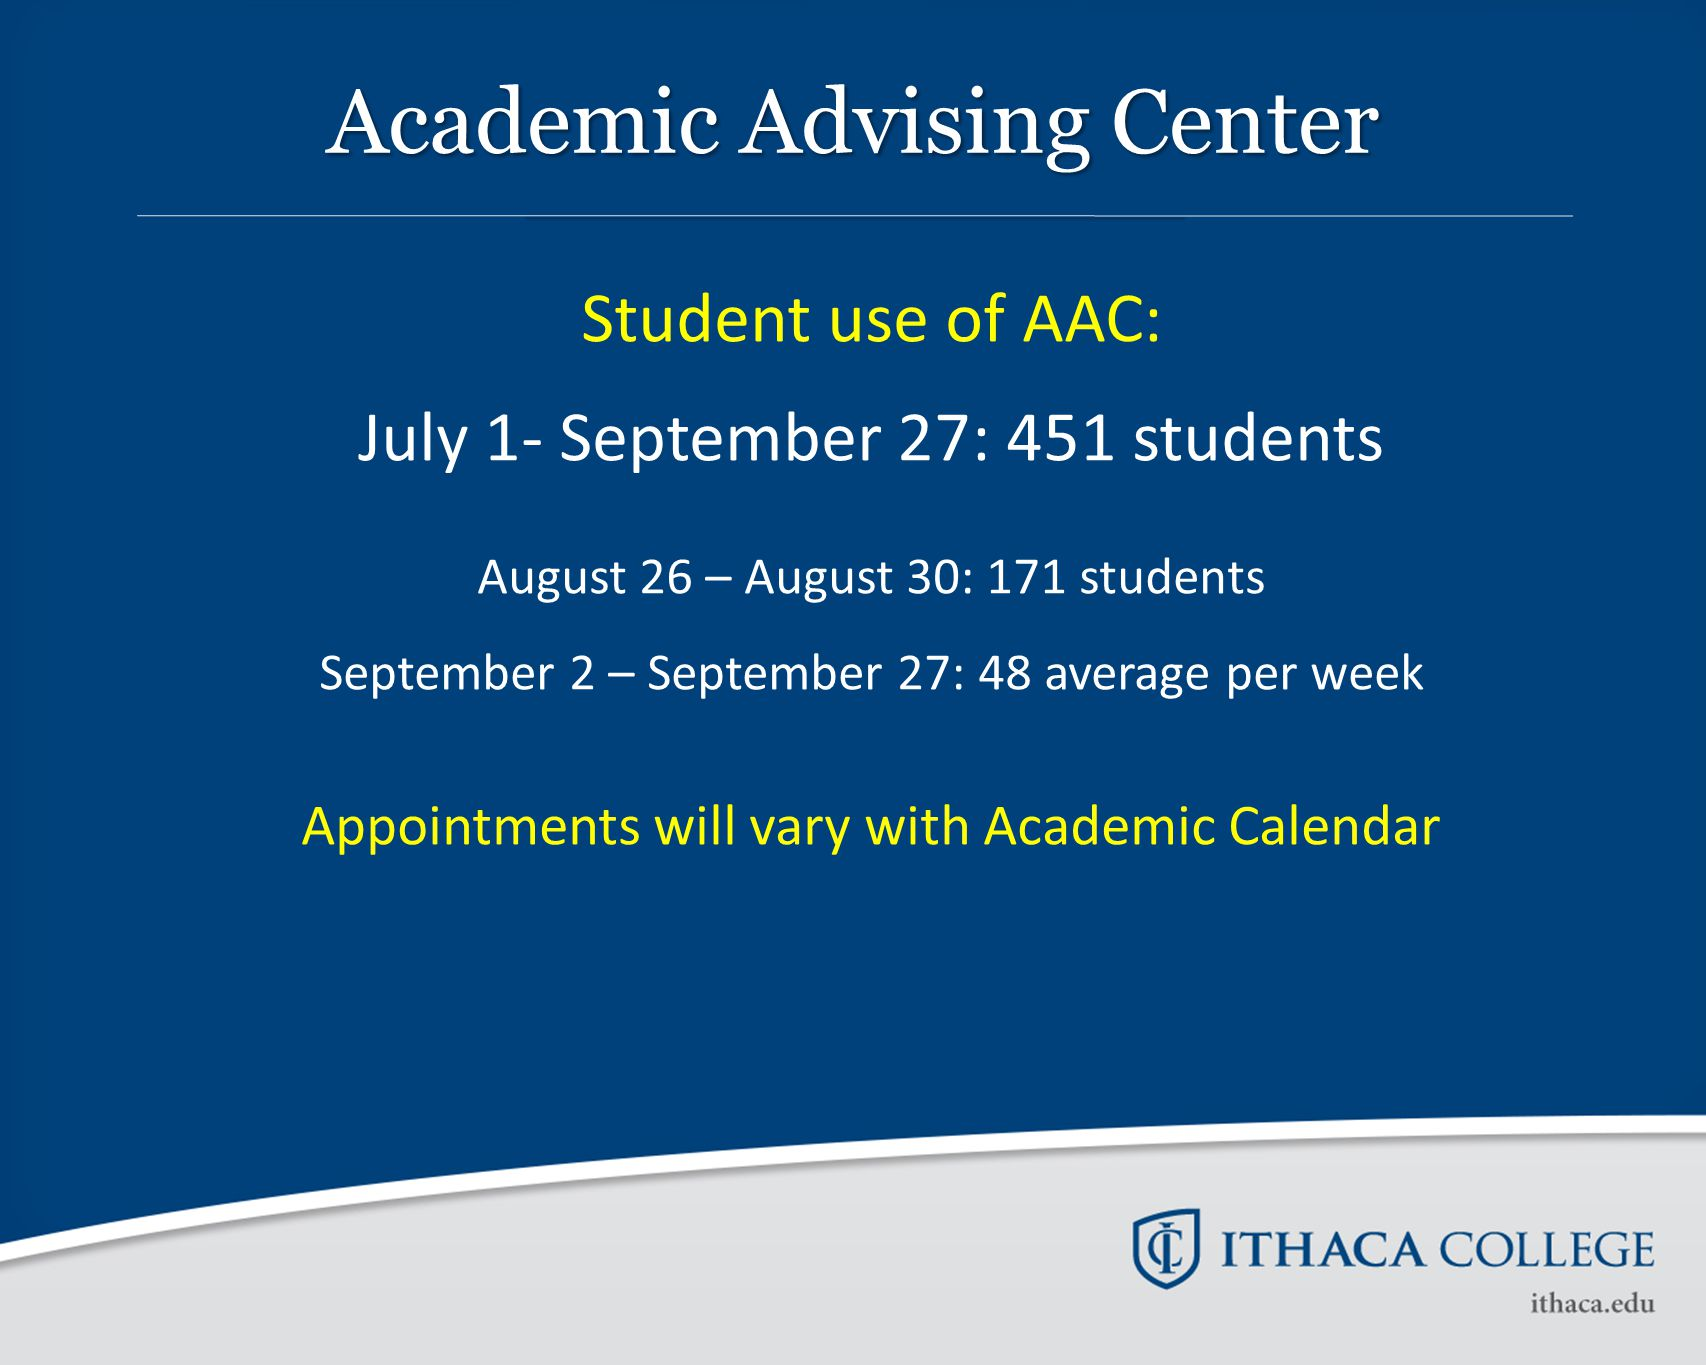 Student use of AAC: July 1- September 27: 451 students August 26 – August 30: 171 students September 2 – September 27: 48 average per week Appointment